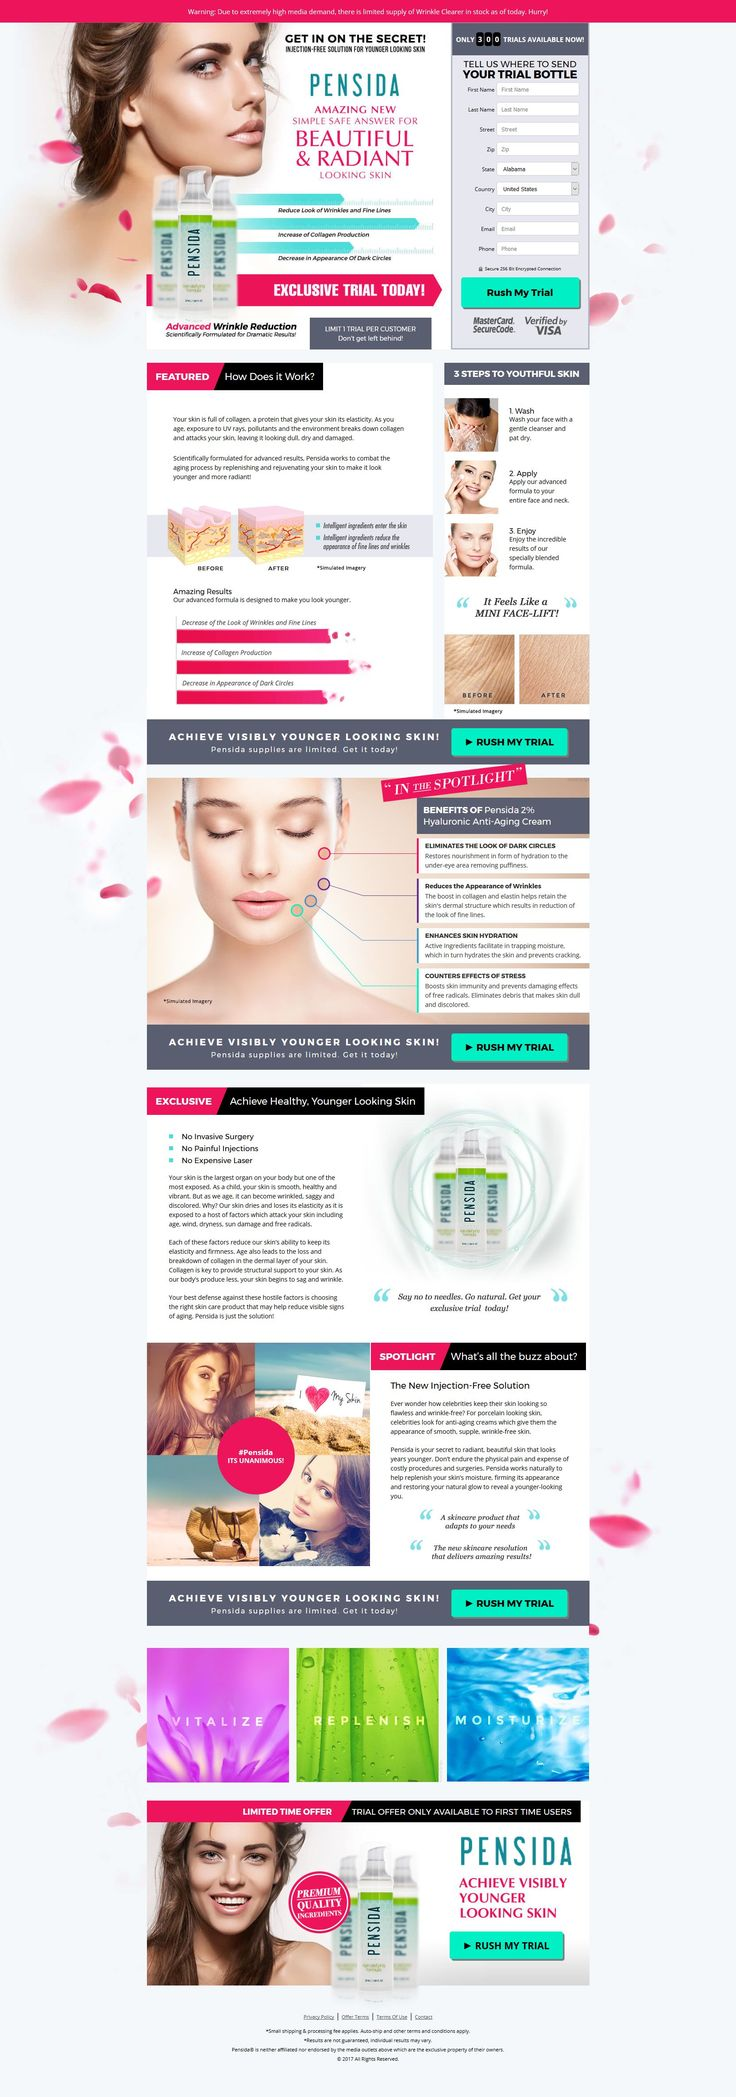 Beverly hill md lift and firming reviews - The Pensida Age Defying Formula Reduces The Look Of Wrinkles And Fine Lines Creases